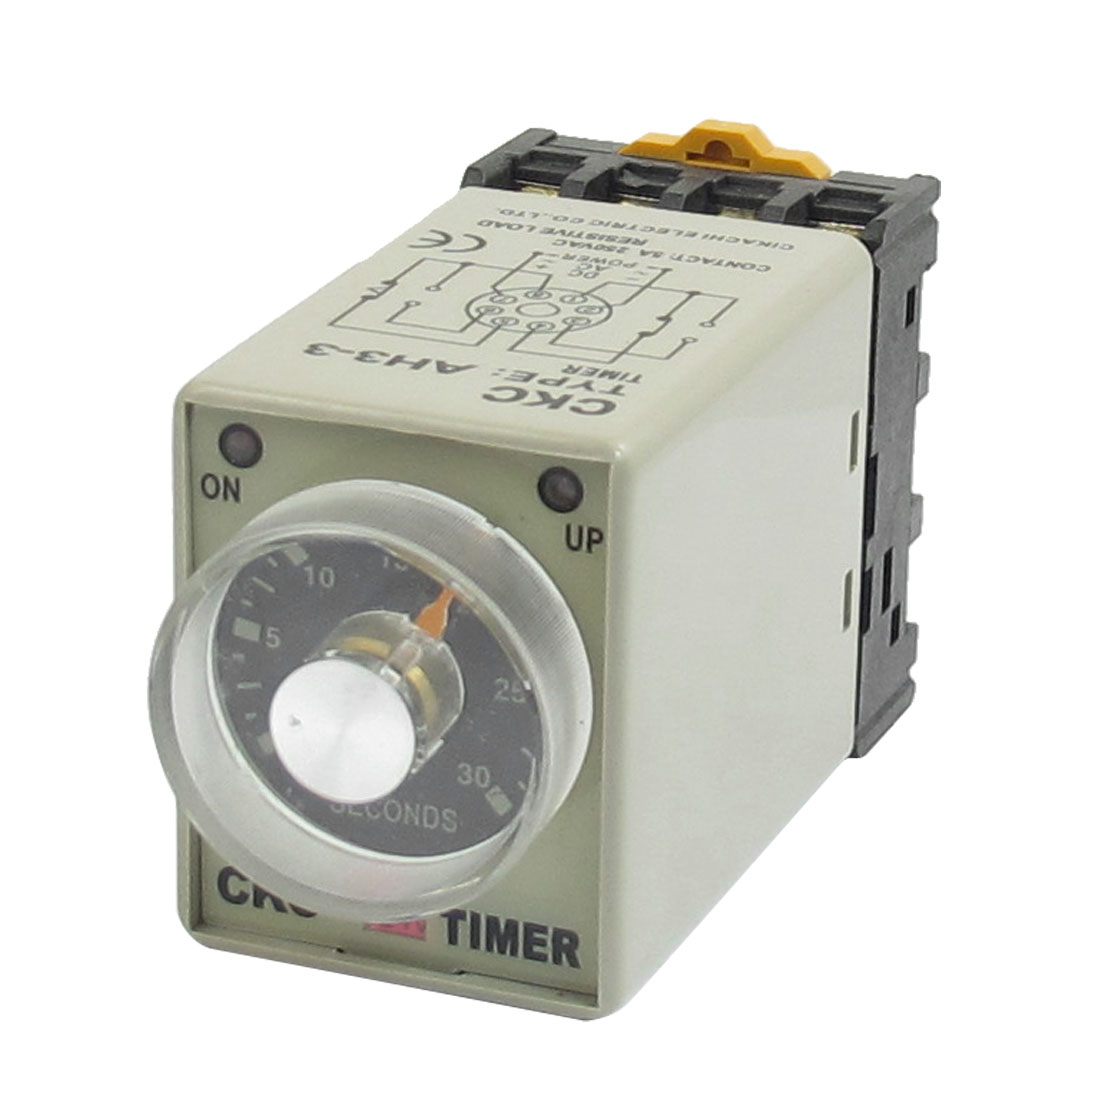 On/Up LED Indicator 0-30 Sec 8P AH3-3 Power Timing Relay 24VDC w Socket